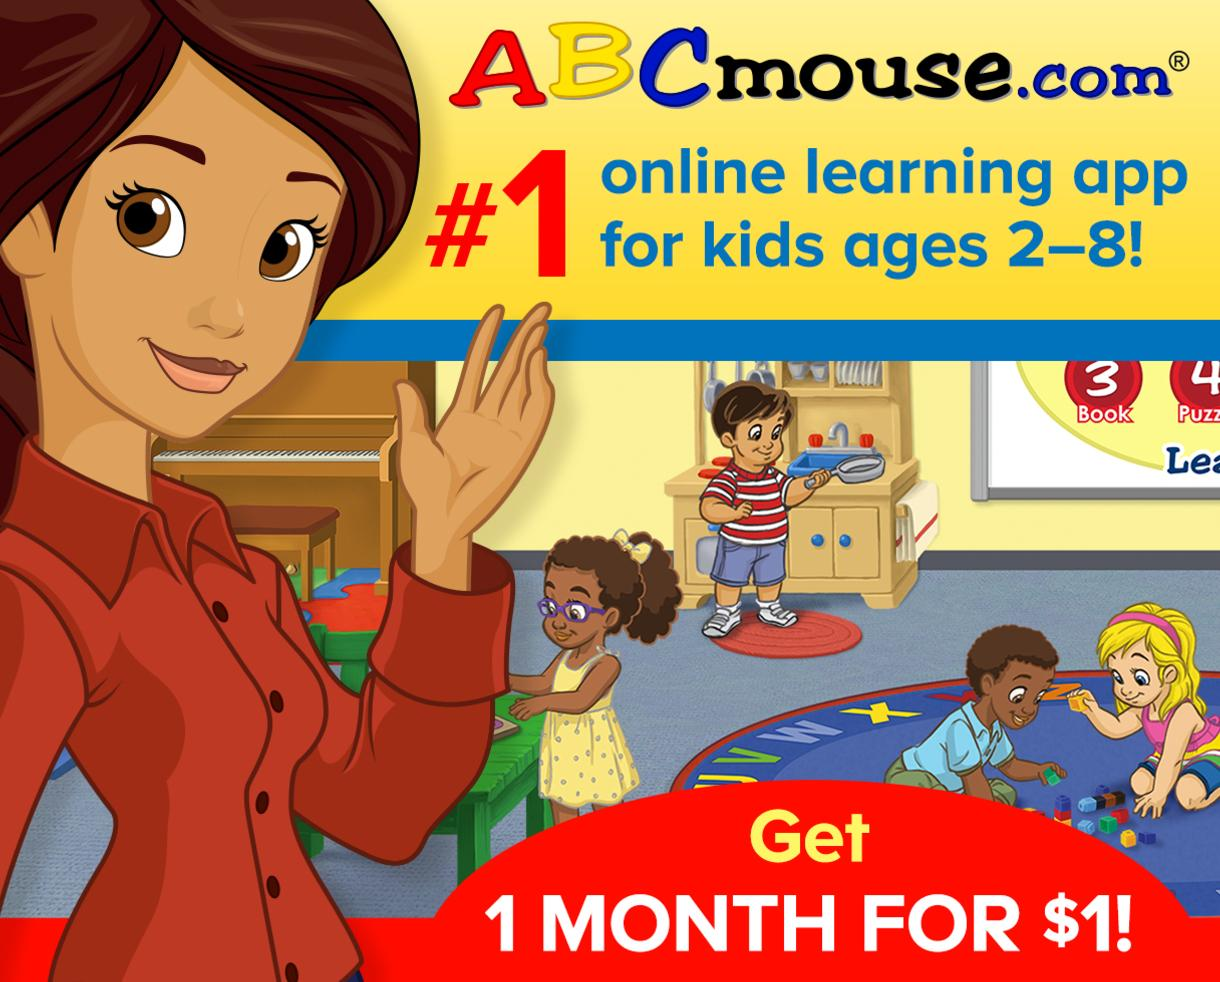 Spring into Learning: Get 1 Month of ABCmouse for $1!